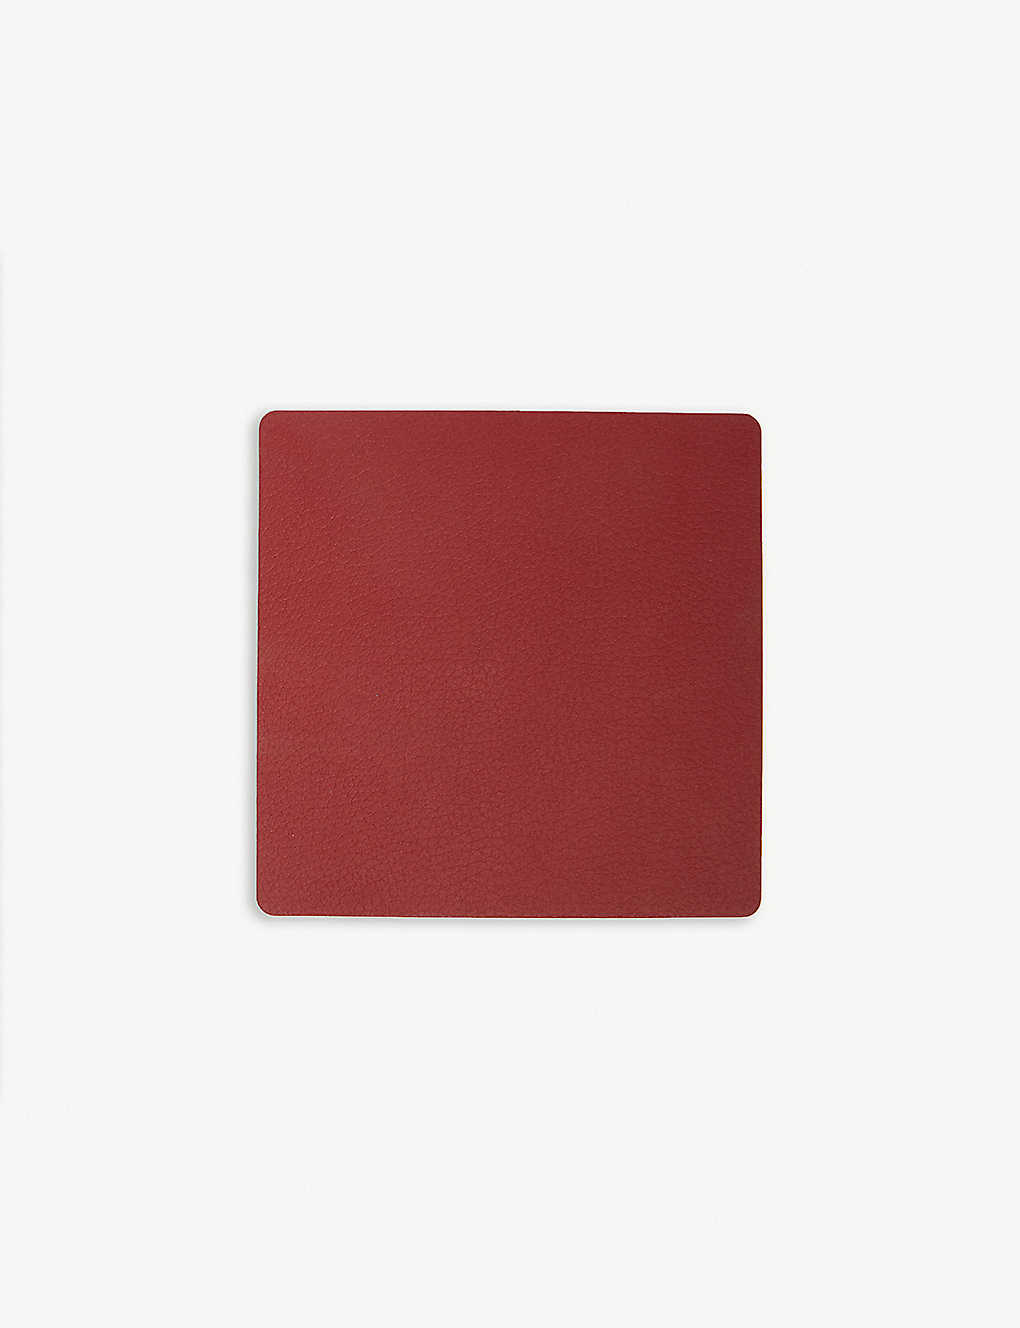 LIND DNA: Nupo square leather coaster